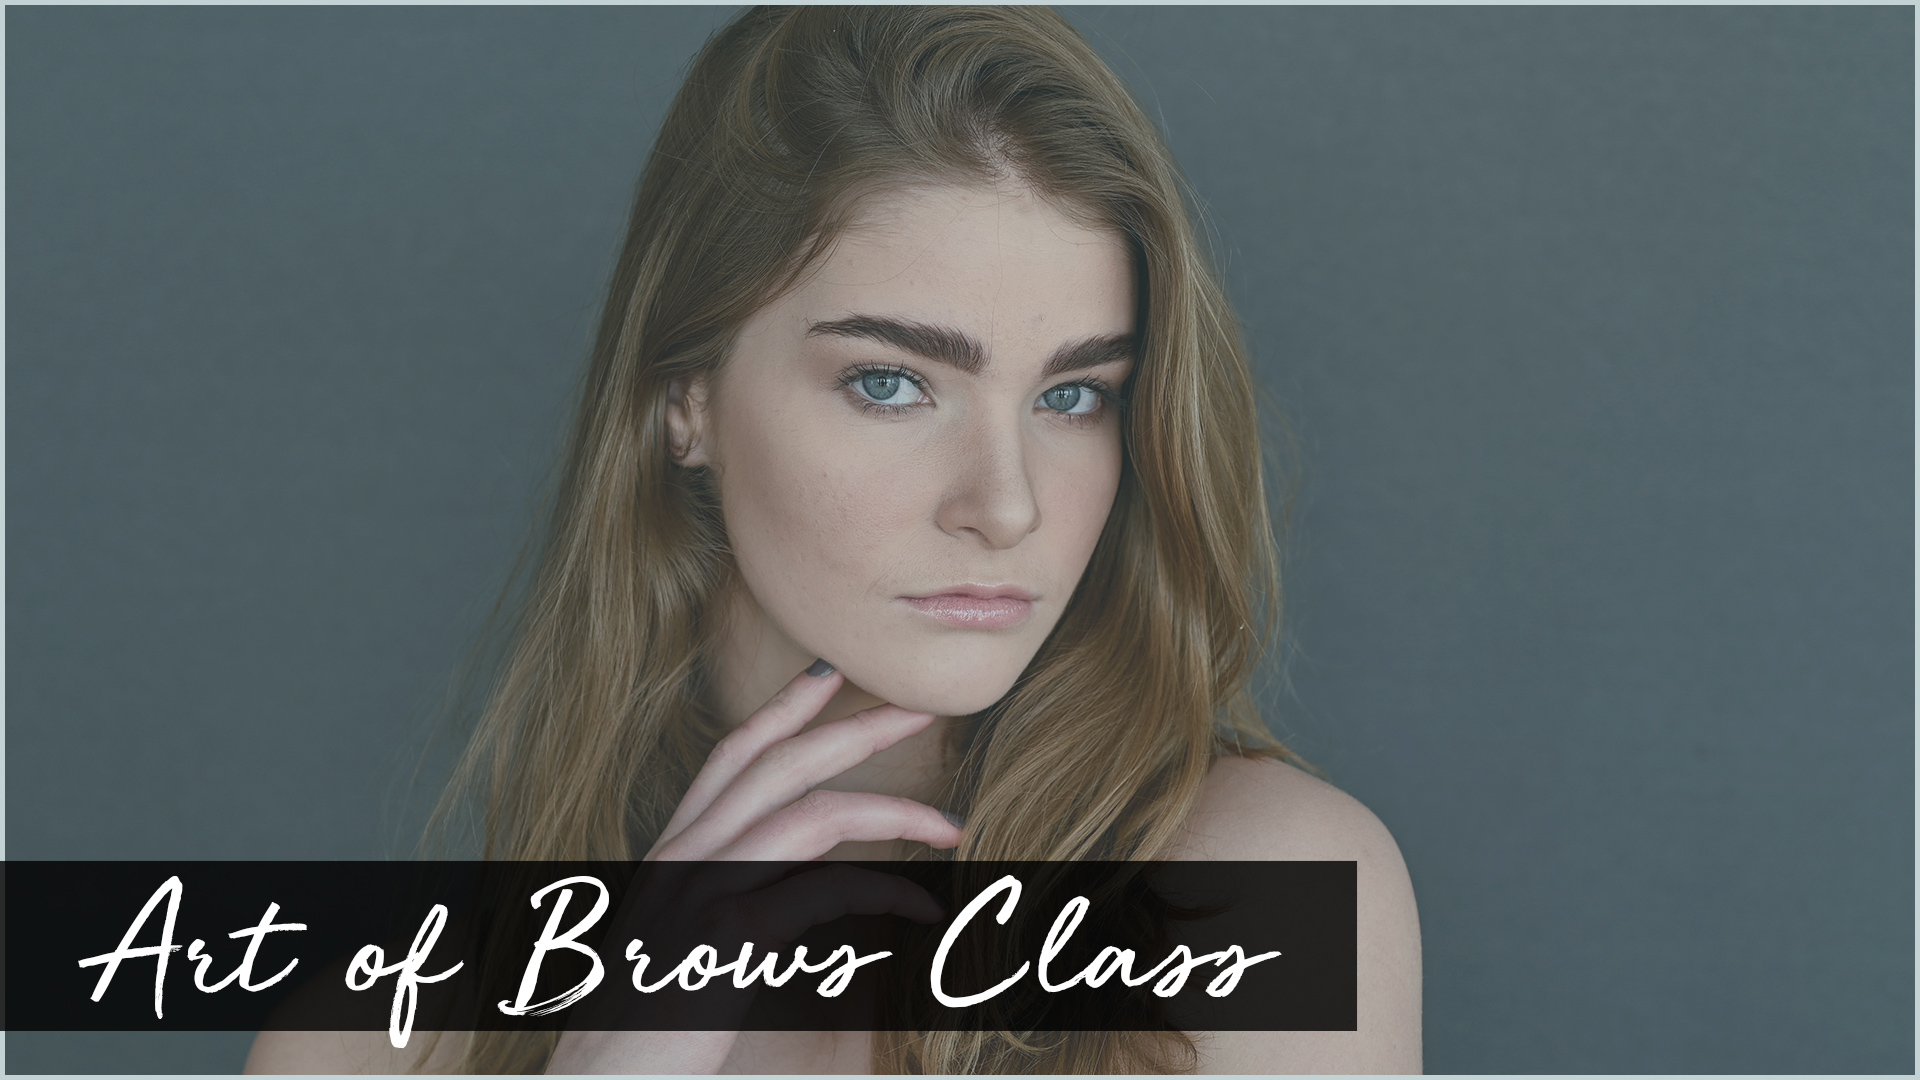 trenalaine-classcovers-1-brows-1920